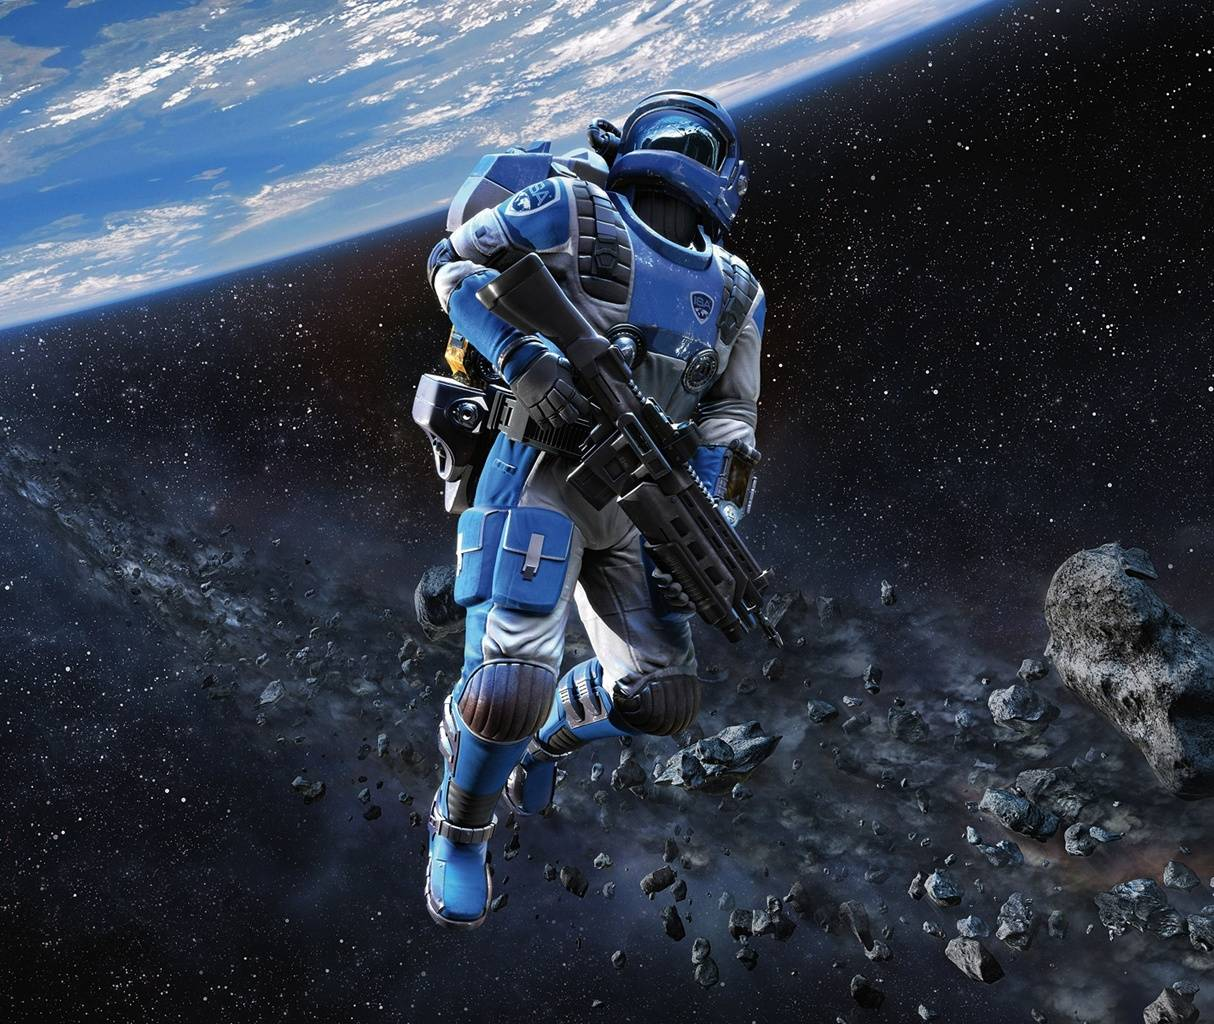 Halo Space